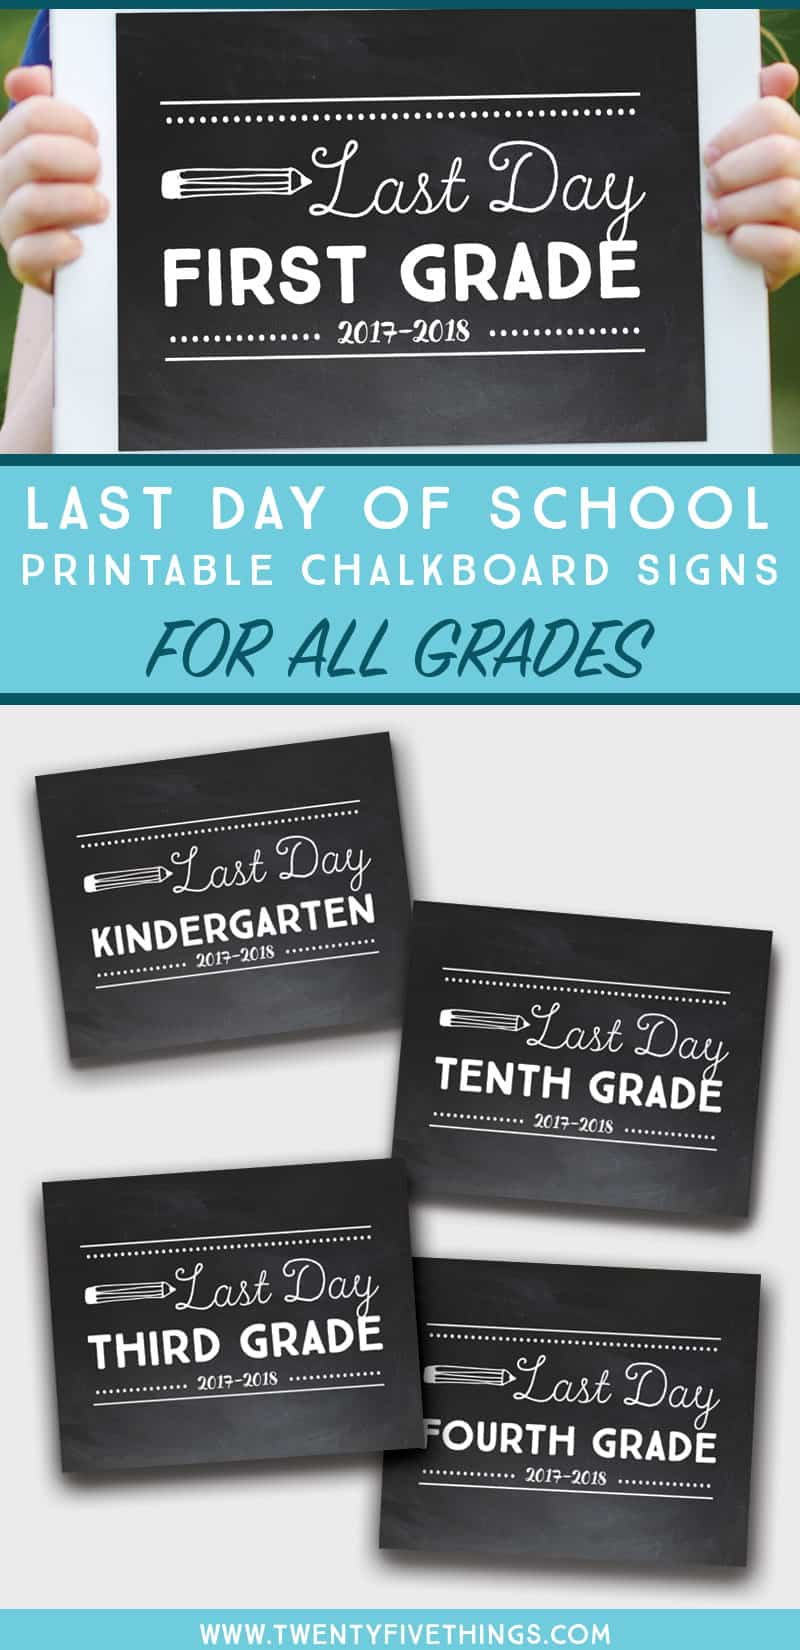 last day of school printable chalkboard signs all grades